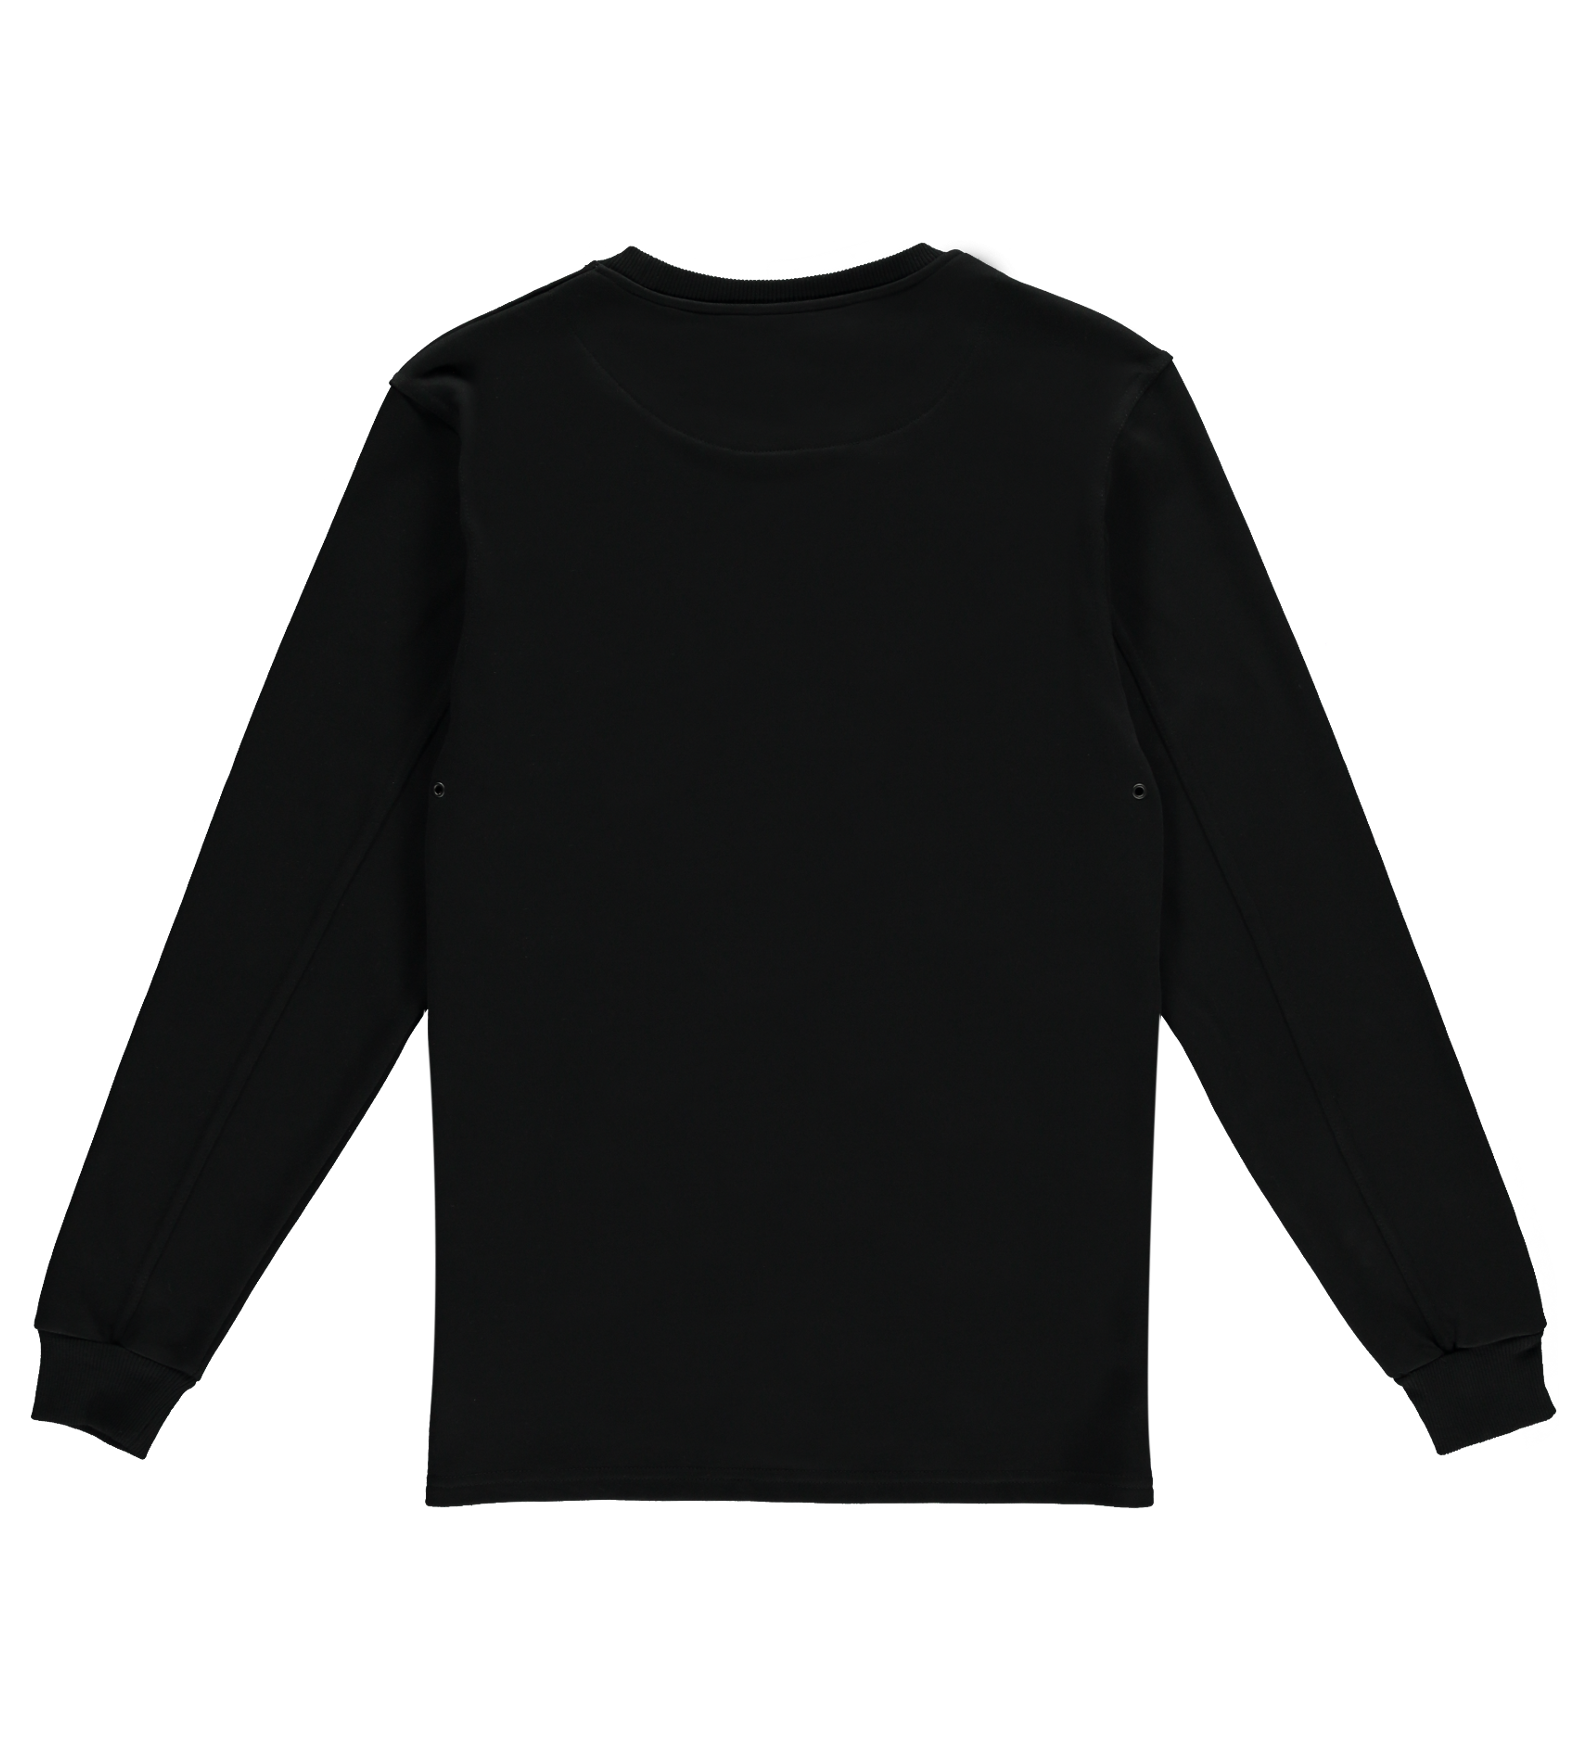 Tundra Sweatshirt — Black